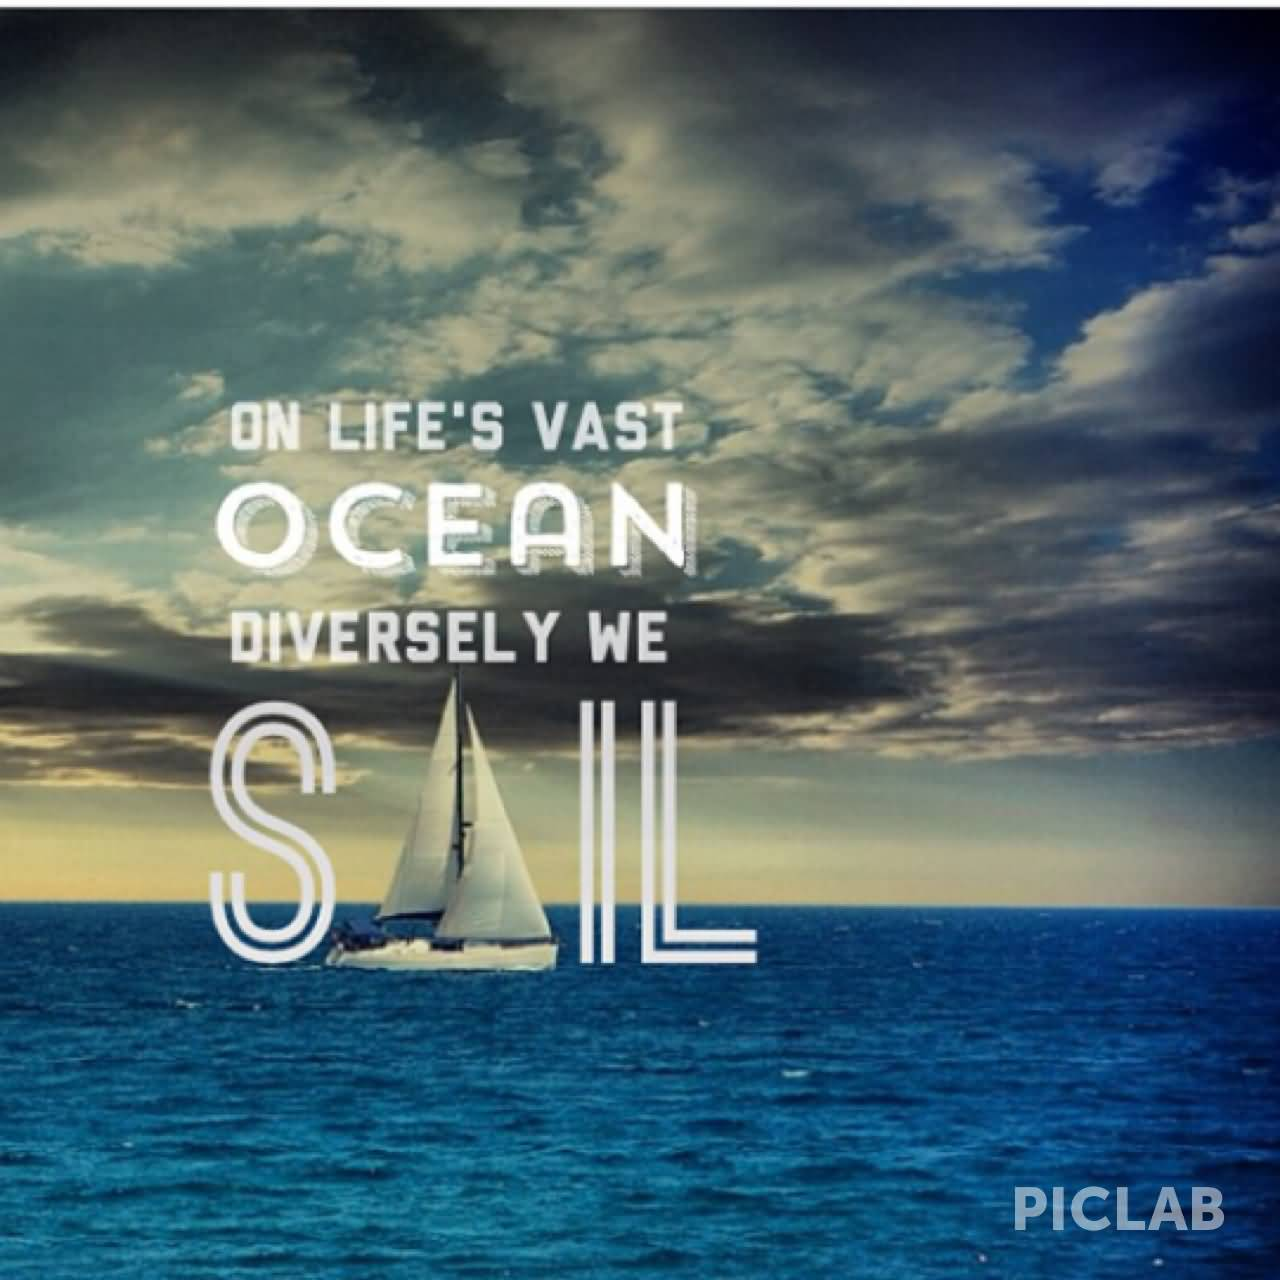 Quotes About Sailing And Life 19